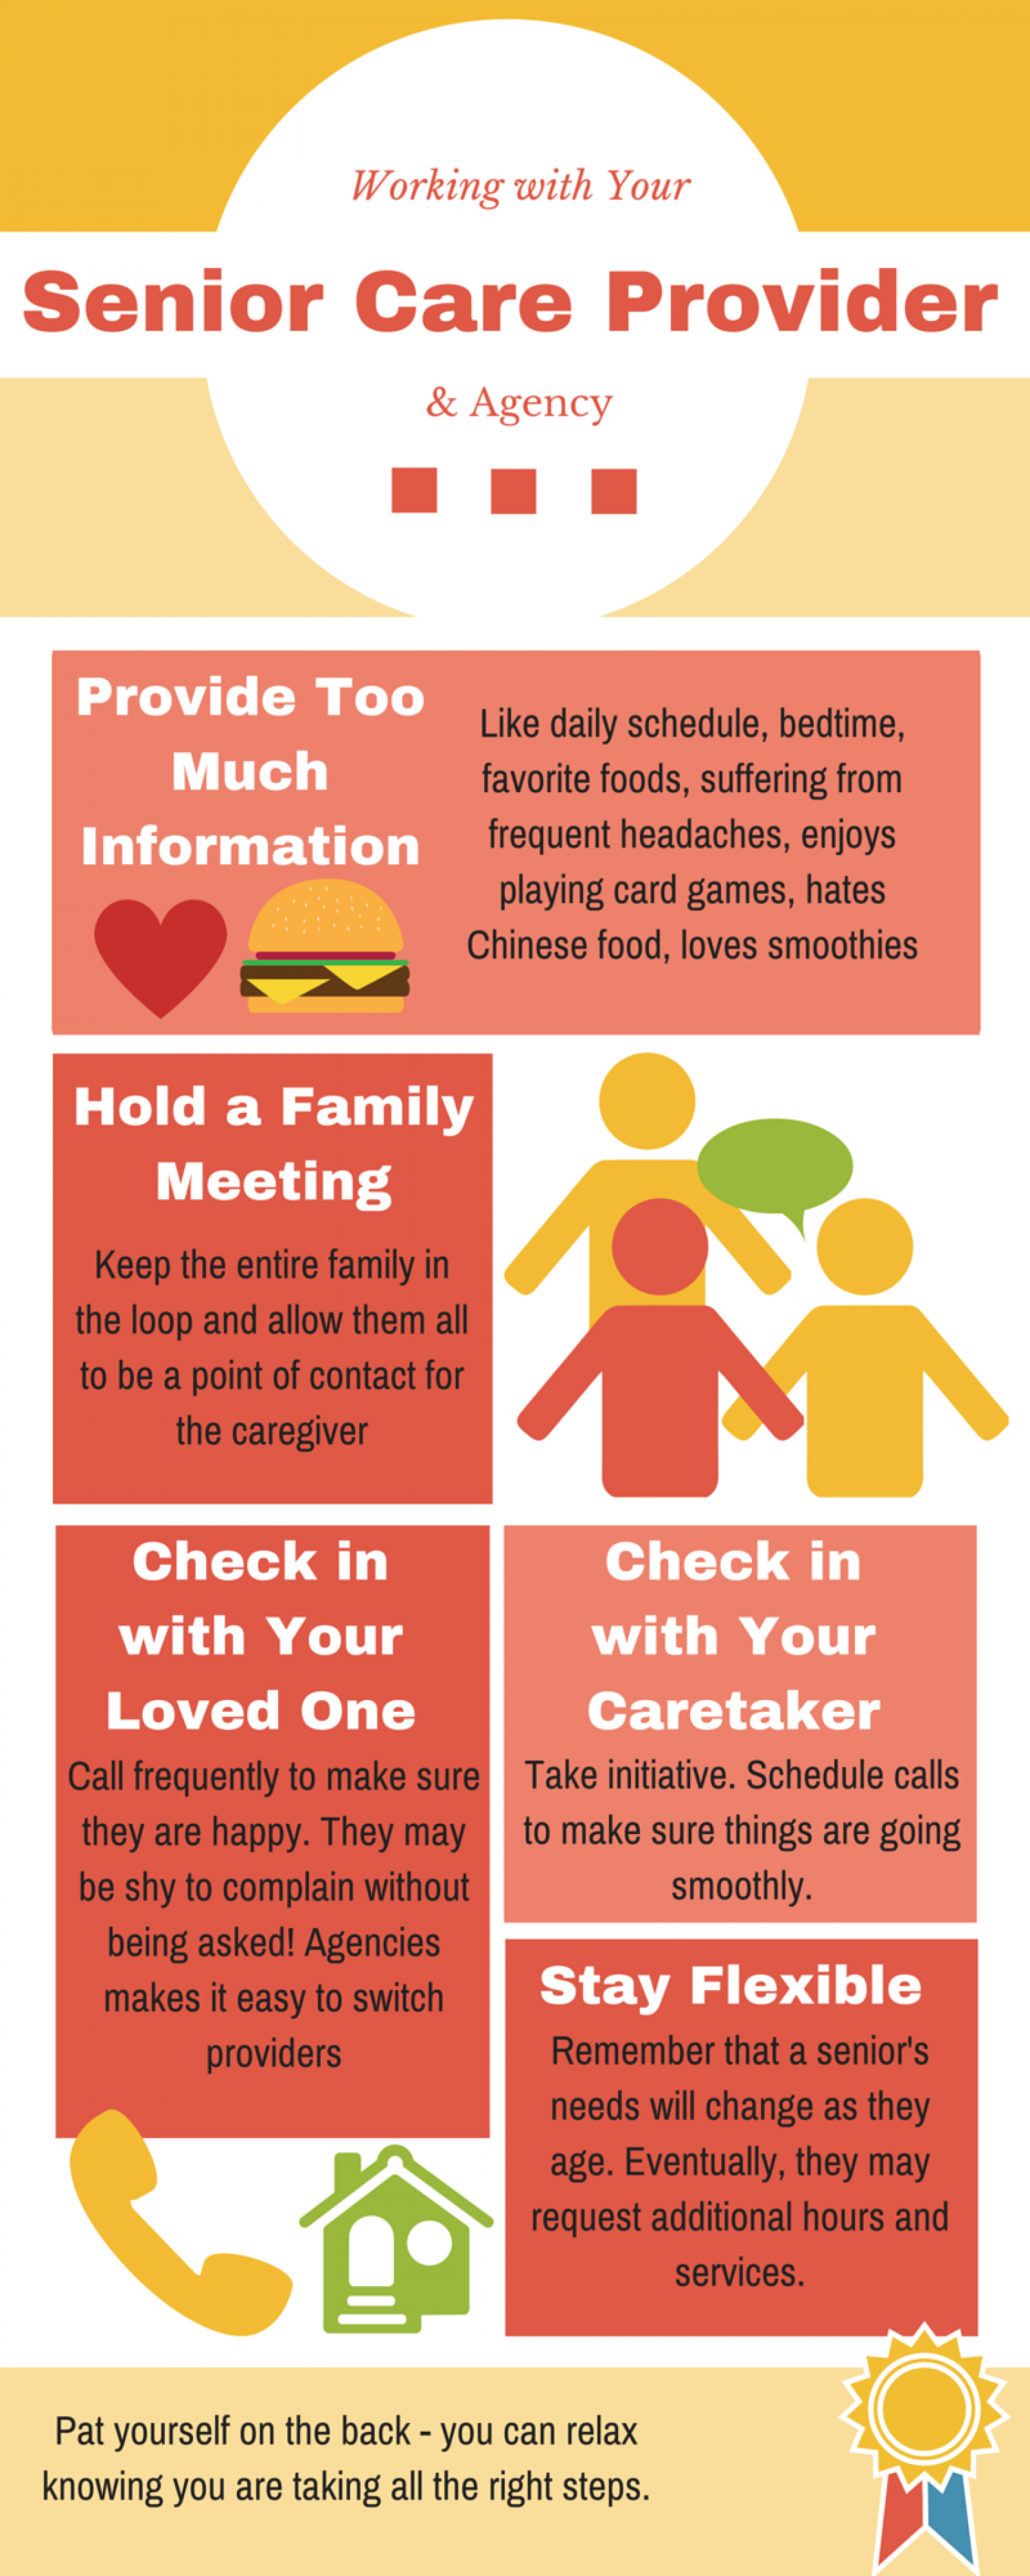 Working with Your Senior Care Provider & Agency Infographic